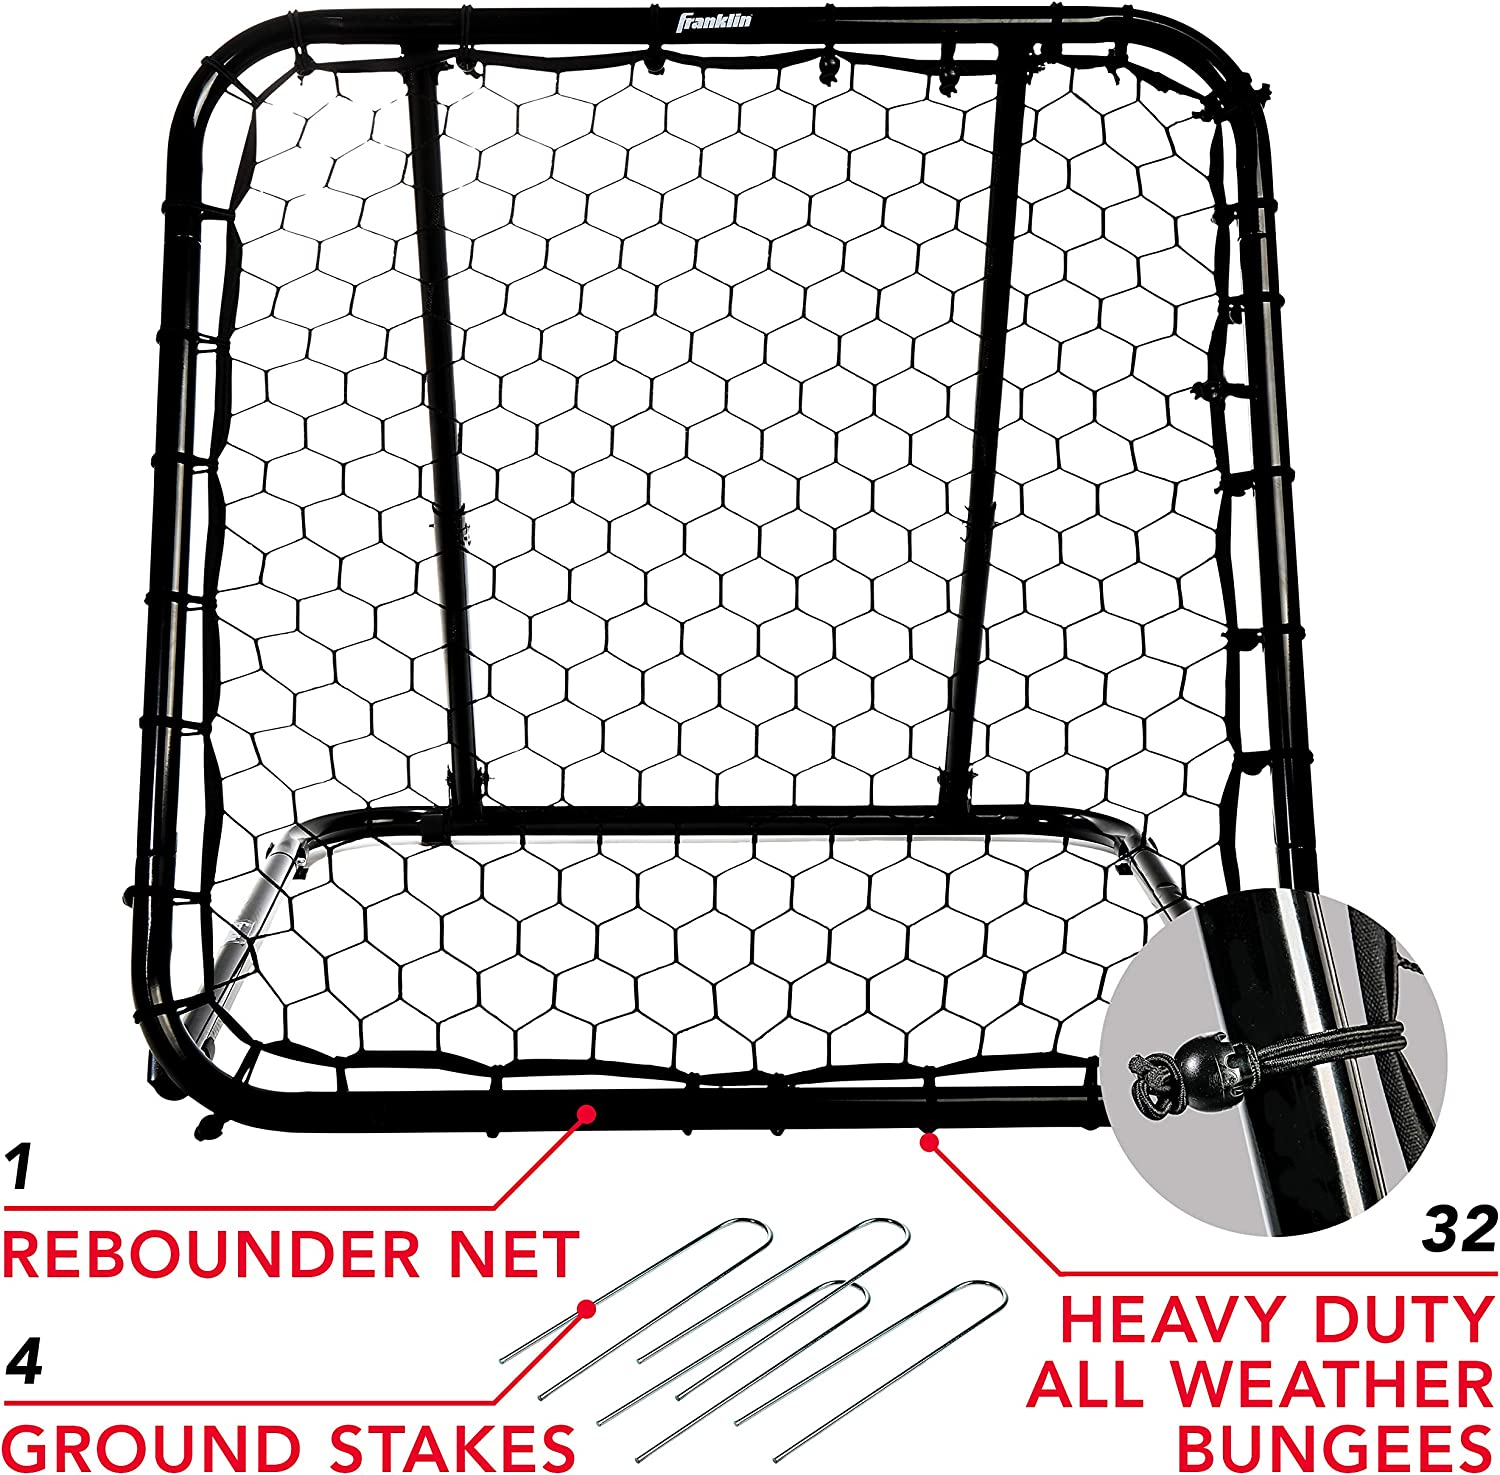 Multi-Sport Training Rebound Screen 3 x 3 Franklin Sports Basketball Pass Back Rebounder Net Perfect for Passing and Shooting Practice